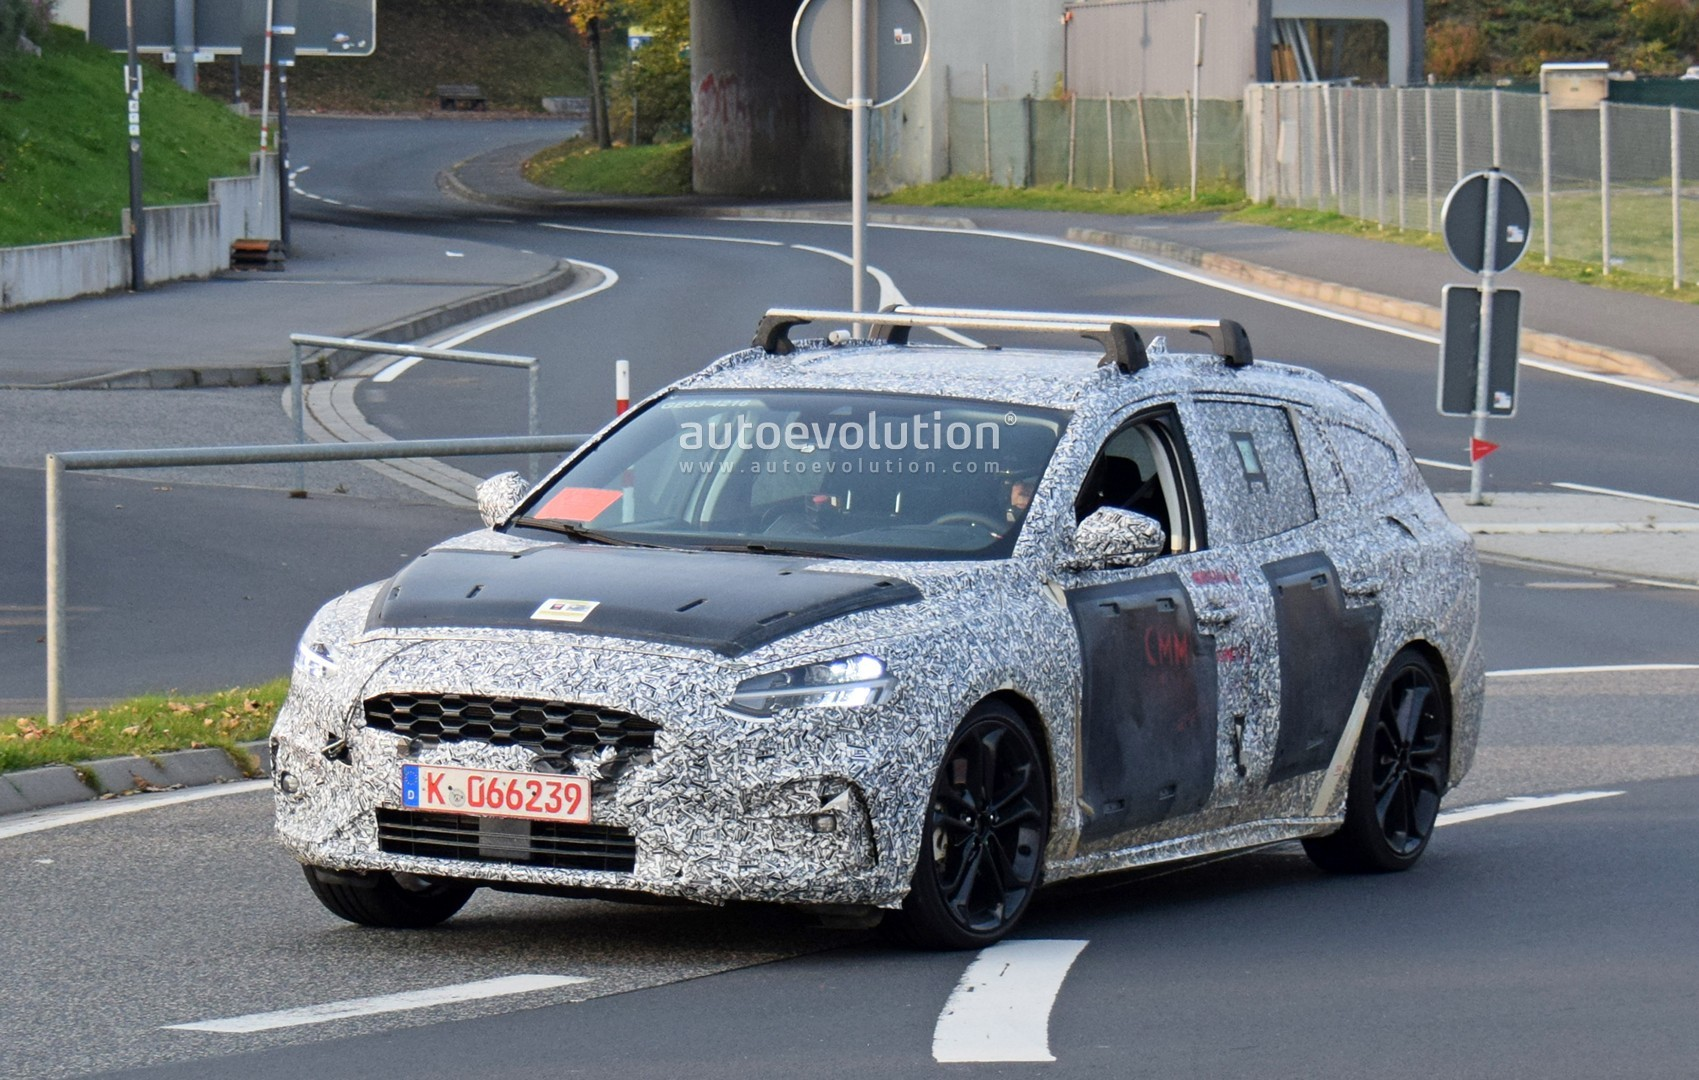 Spyshots 2019 Ford Focus St Wagon Reveals Volvo Inspired